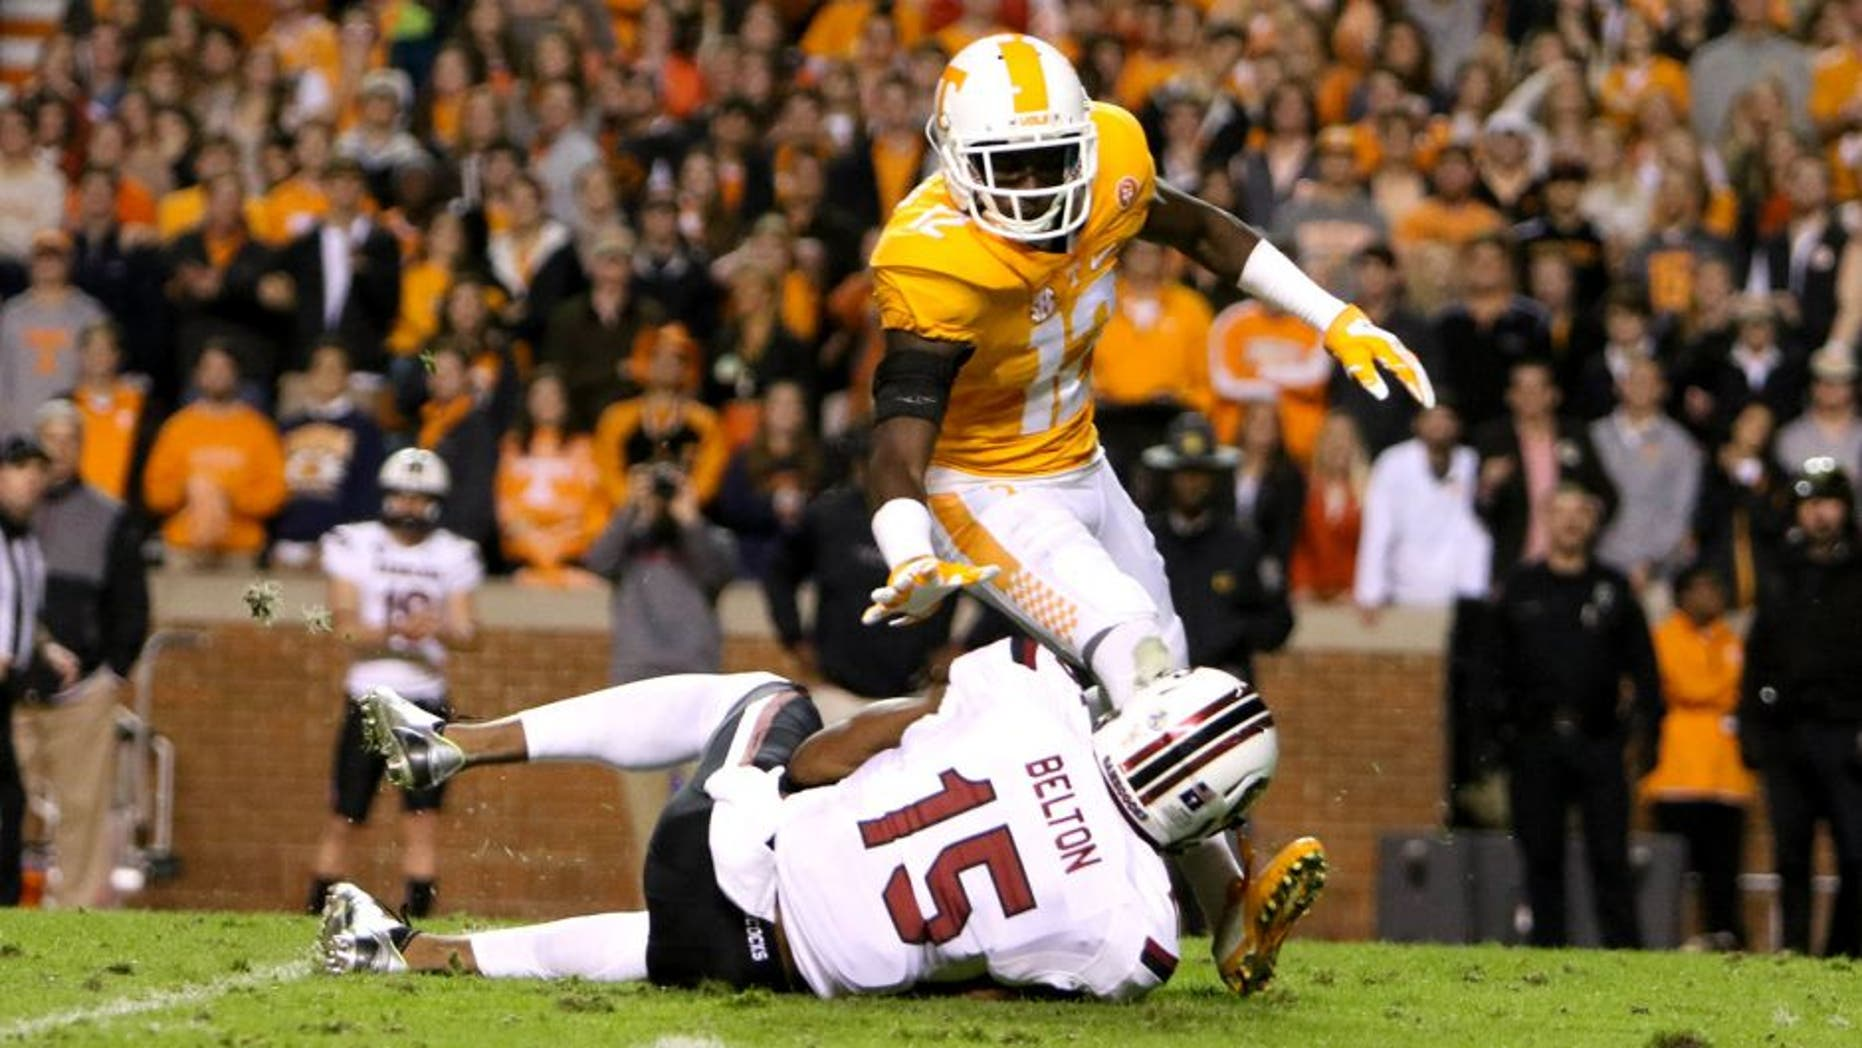 Nov 7, 2015; Knoxville, TN, USA; South Carolina Gamecocks wide receiver Matrick Belton (15) with the ball while defended by Tennessee Volunteers defender Emmanuel Moseley at Neyland Stadium. Mandatory Credit: Randy Sartin-USA TODAY Sports.